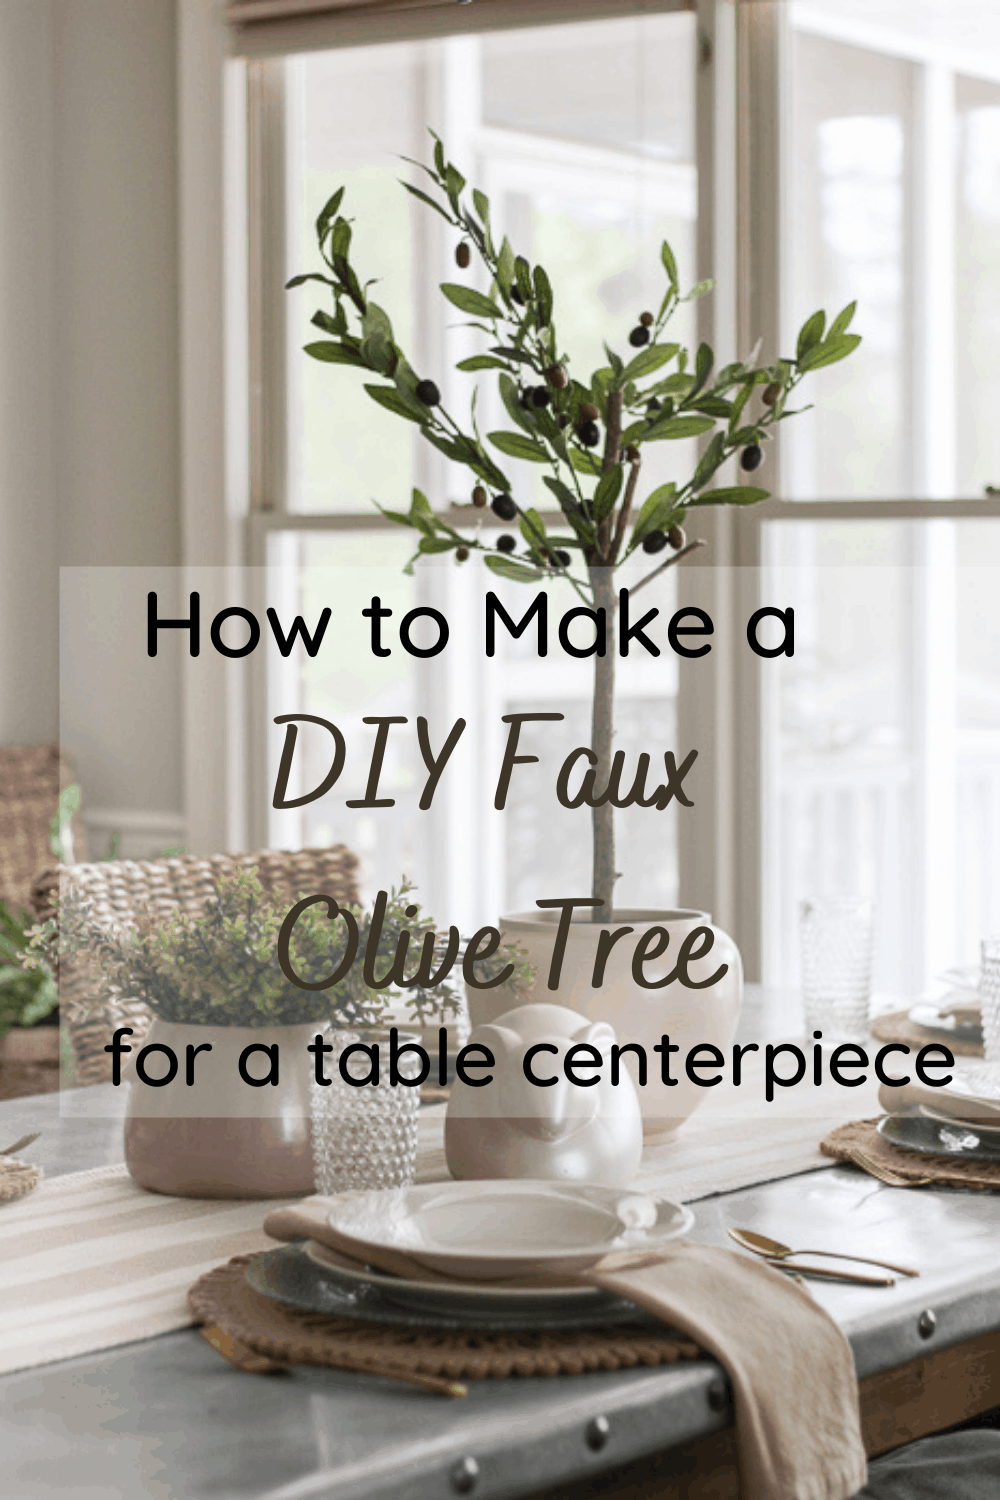 How to make a diy faux olive tree for a table centerpiece